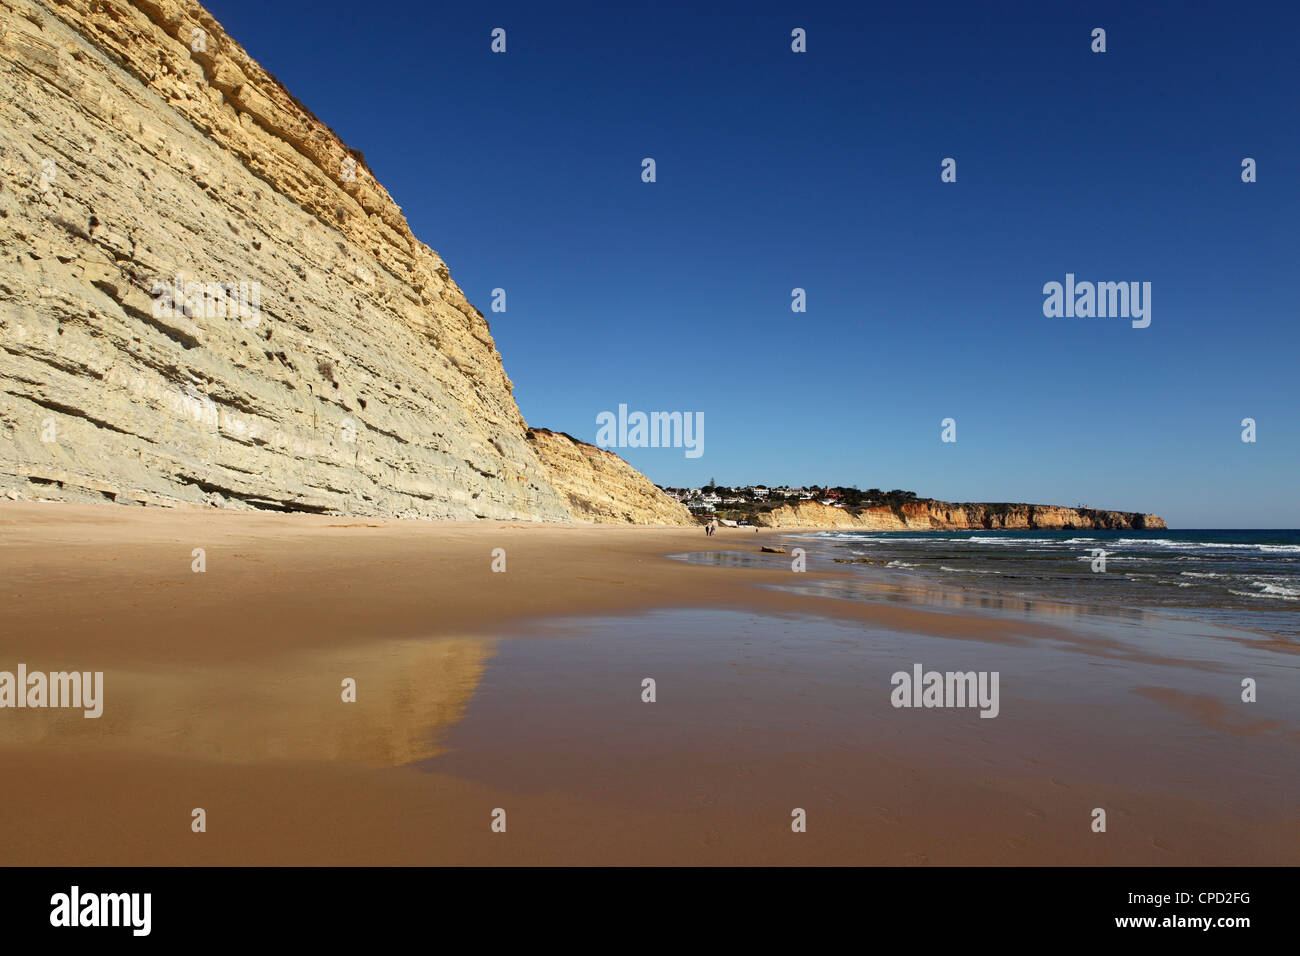 Golden sands and steep stratified cliffs, typical of the Atlantic coastline near Lagos, Algarve, Portugal, Europe - Stock Image